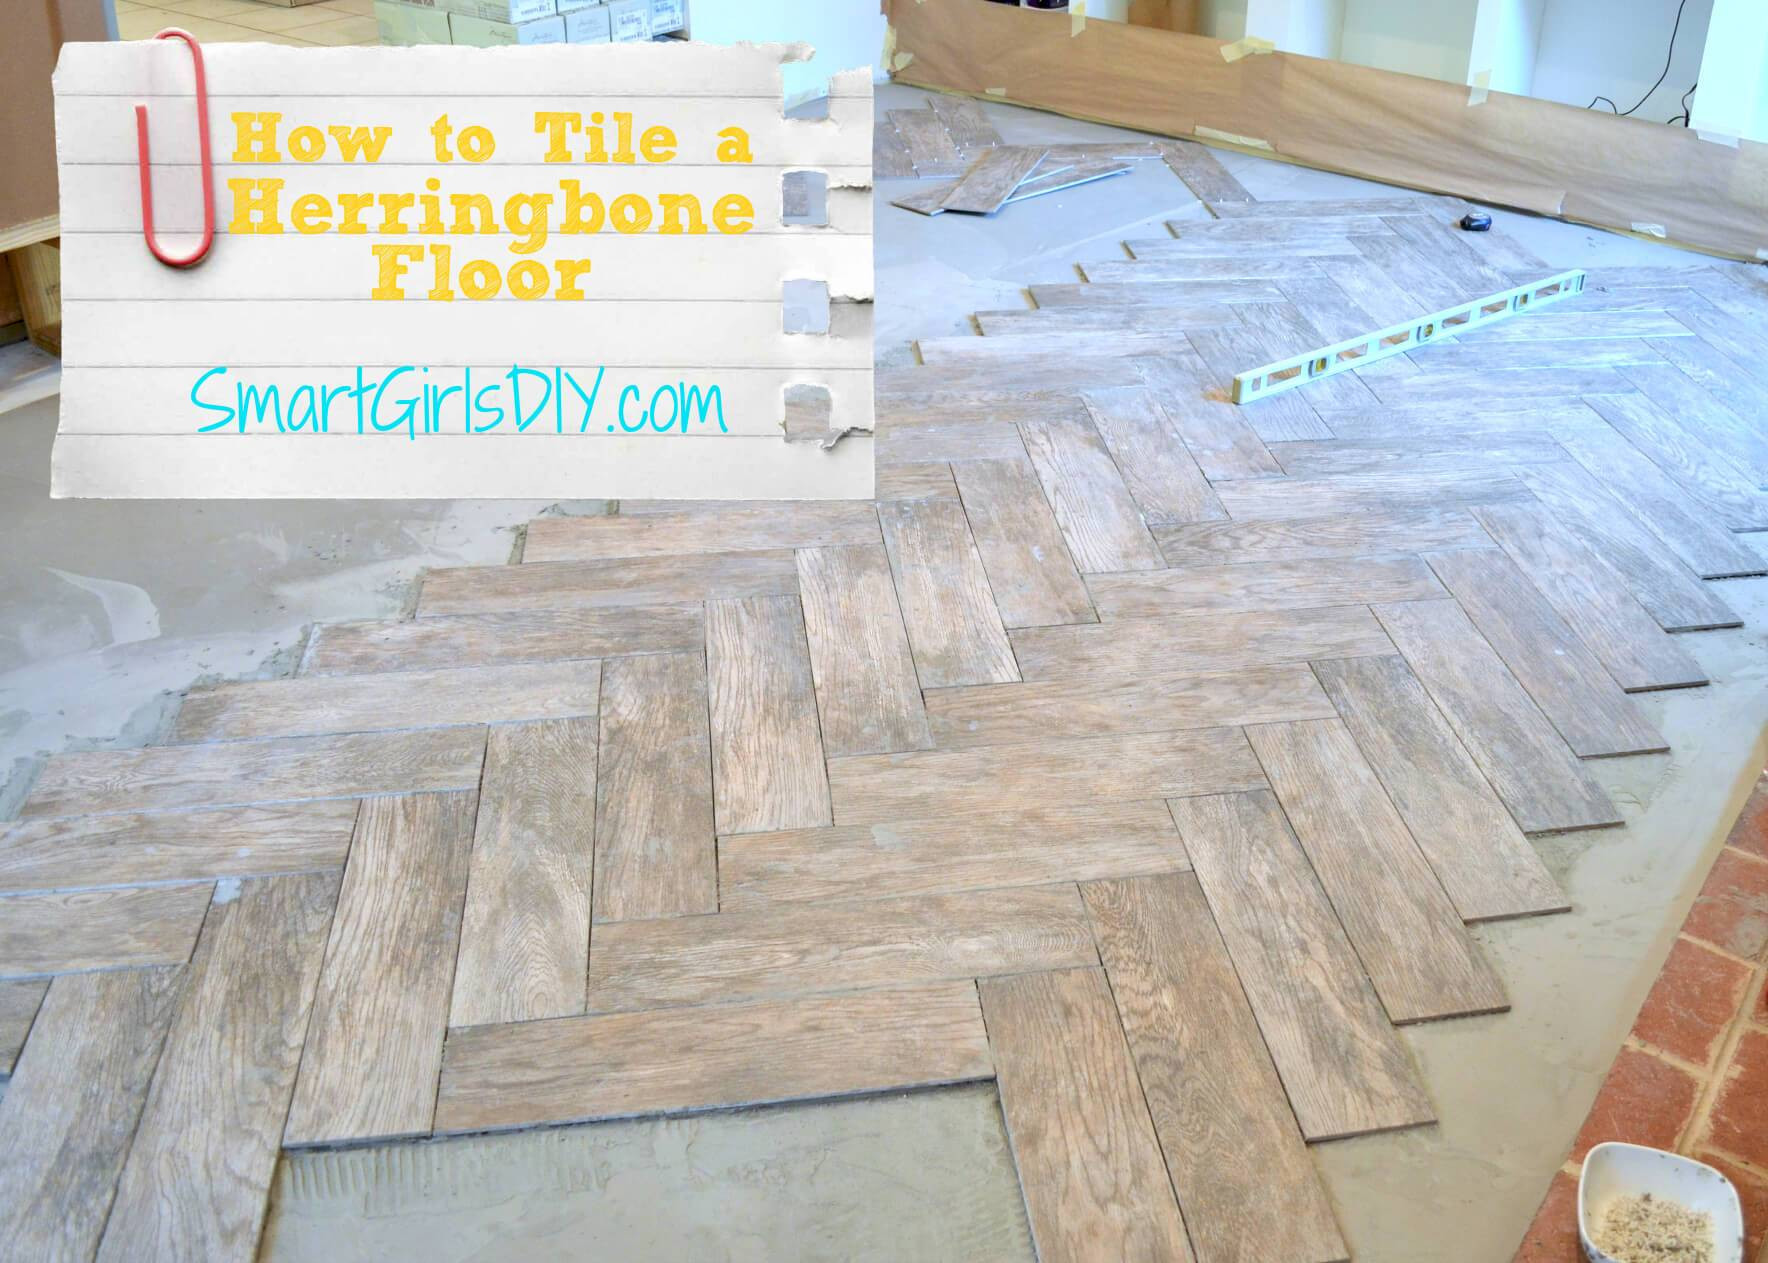 ceramic tile vs hardwood flooring of how to tile a herringbone floor family room 10 for how to tile a herringbone floor yourself